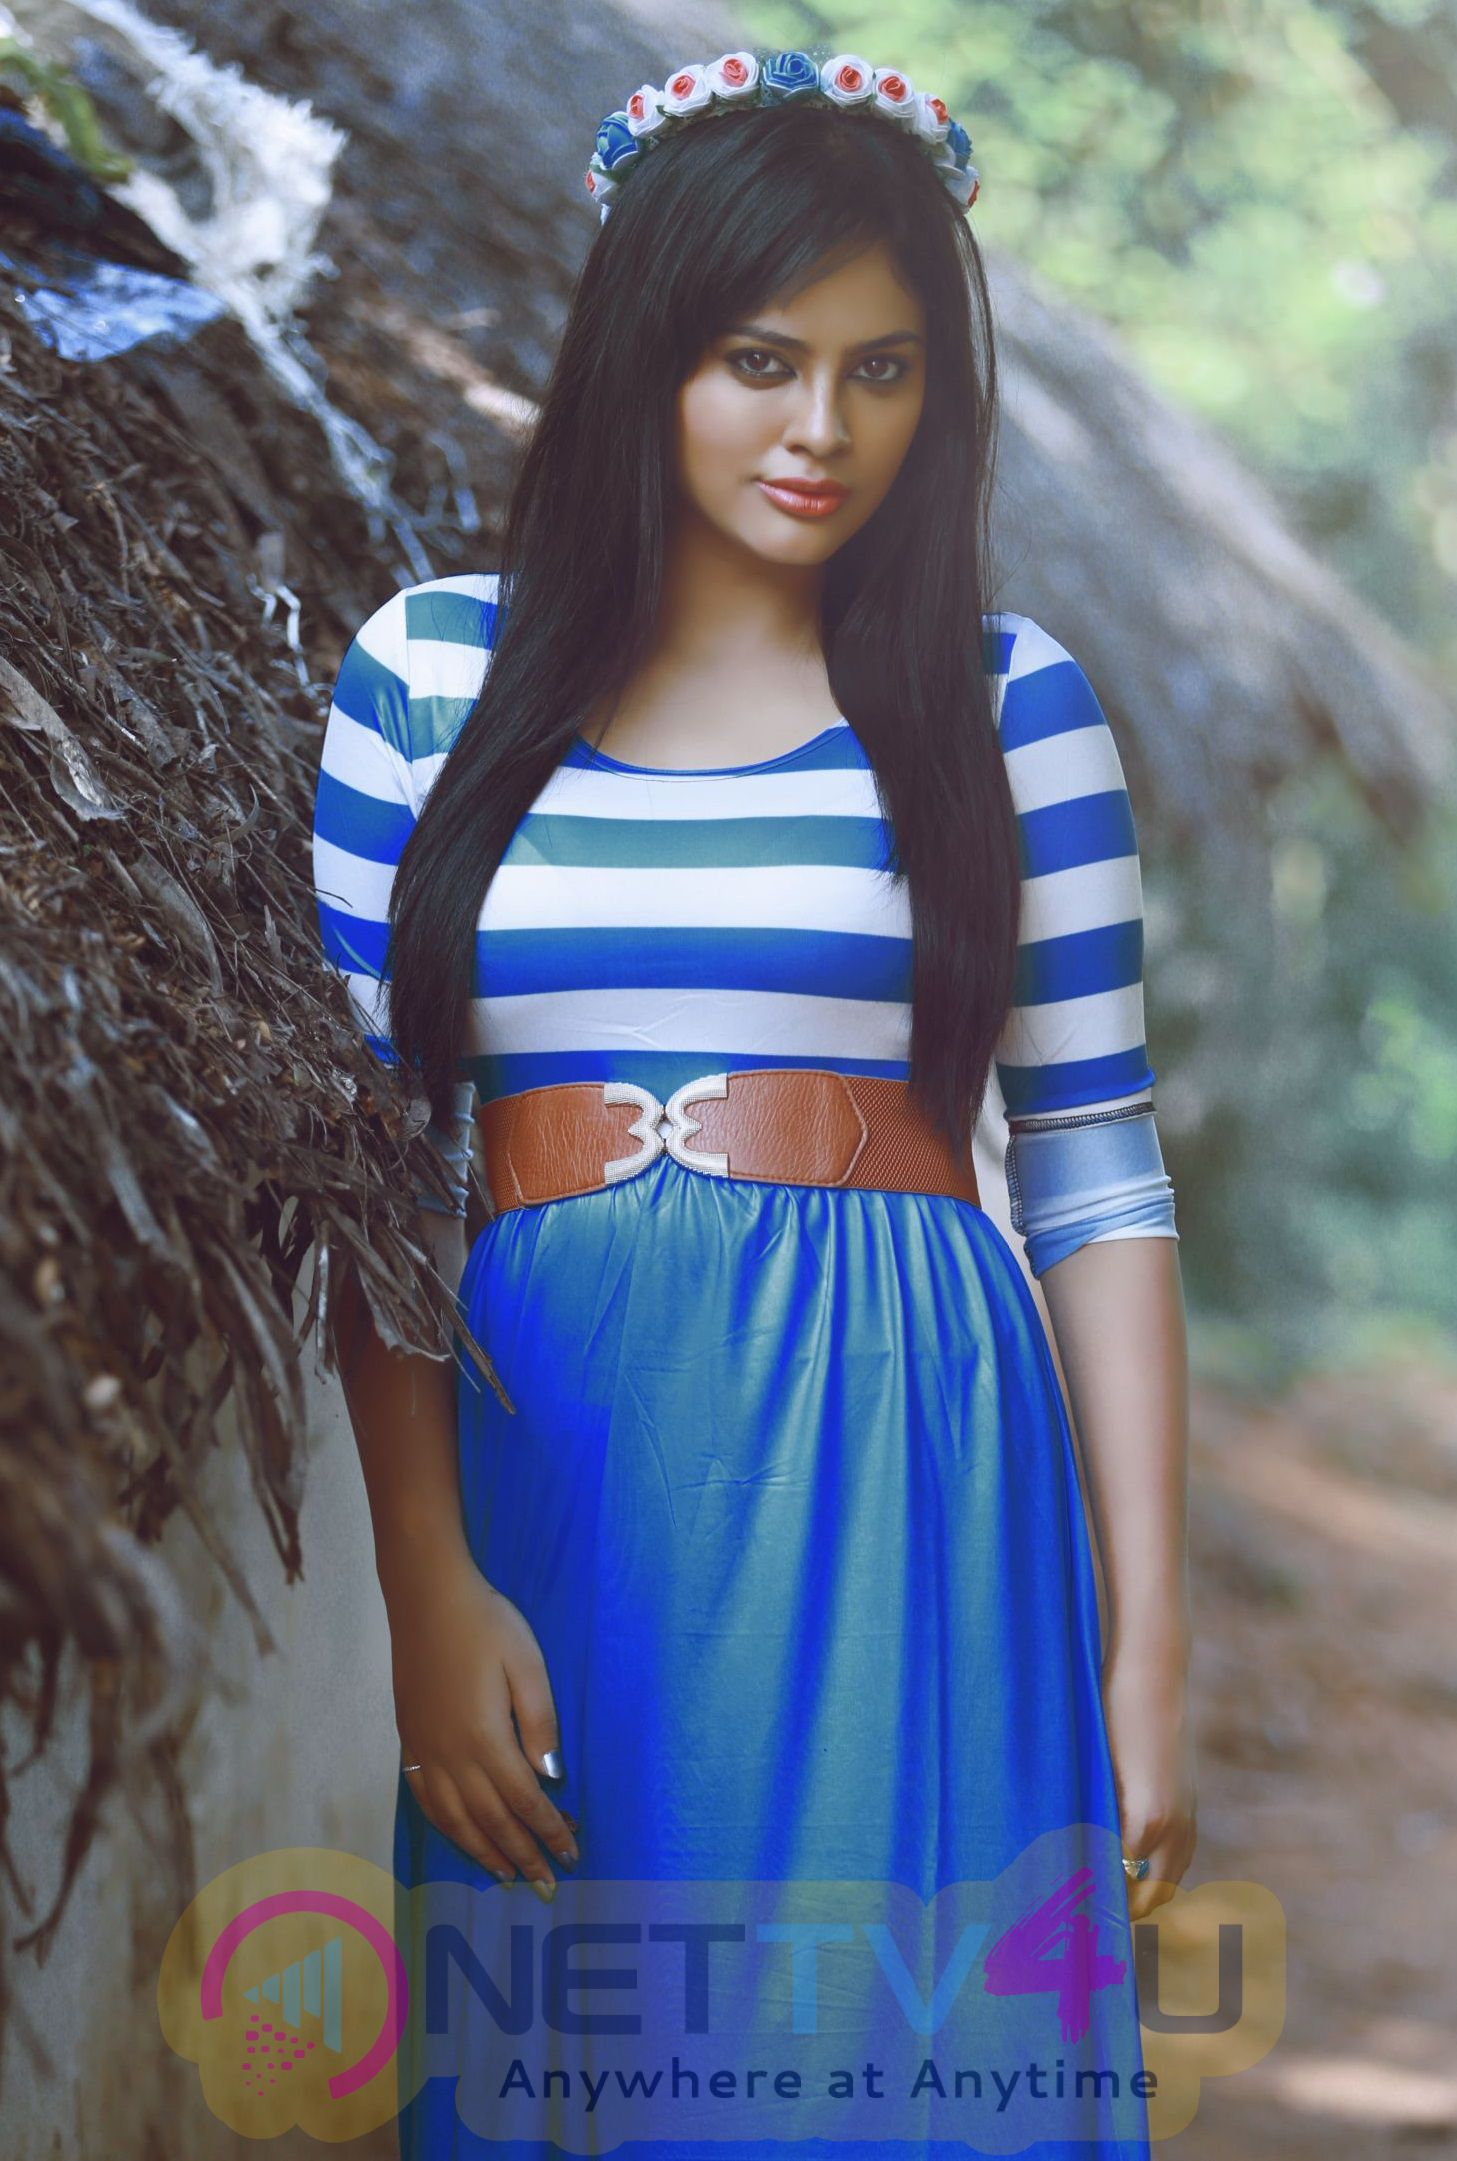 tamil actress nandita latest stills 1